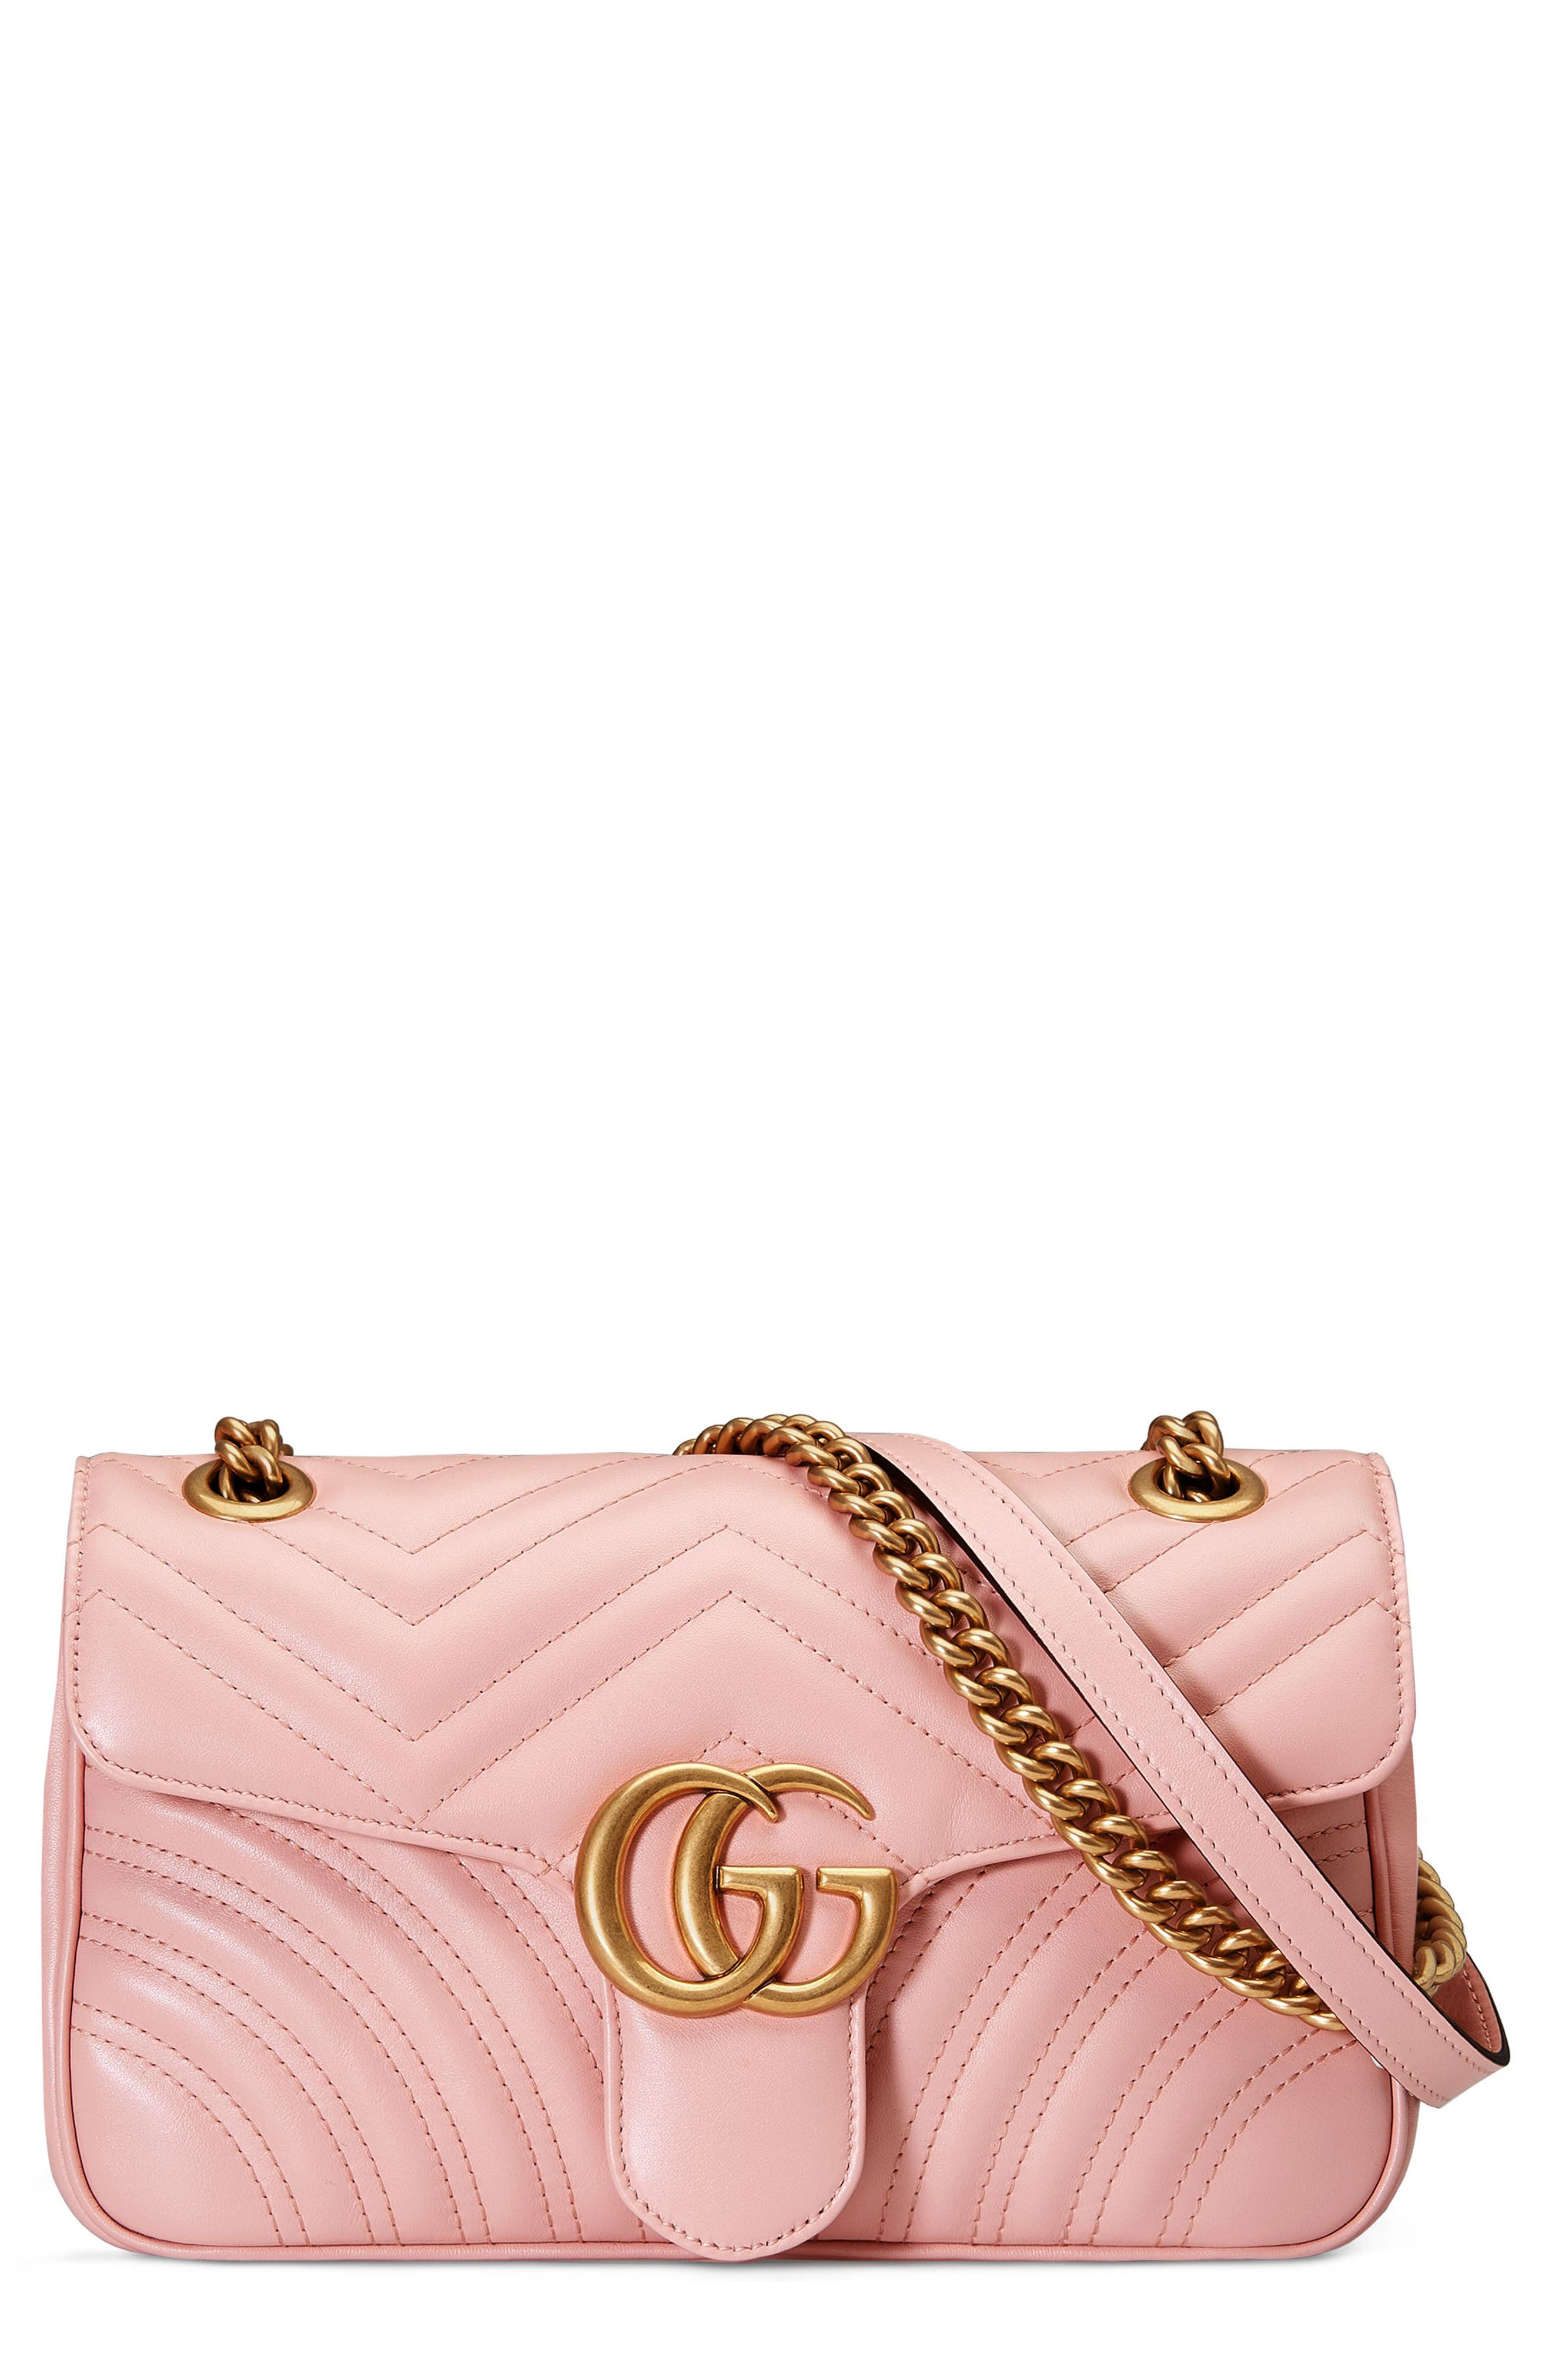 Small GG Marmont 2.0 Matelassé Leather Shoulder Bag,                             Main thumbnail 1, color,                             PERFECT PINK/ PERFECT PINK